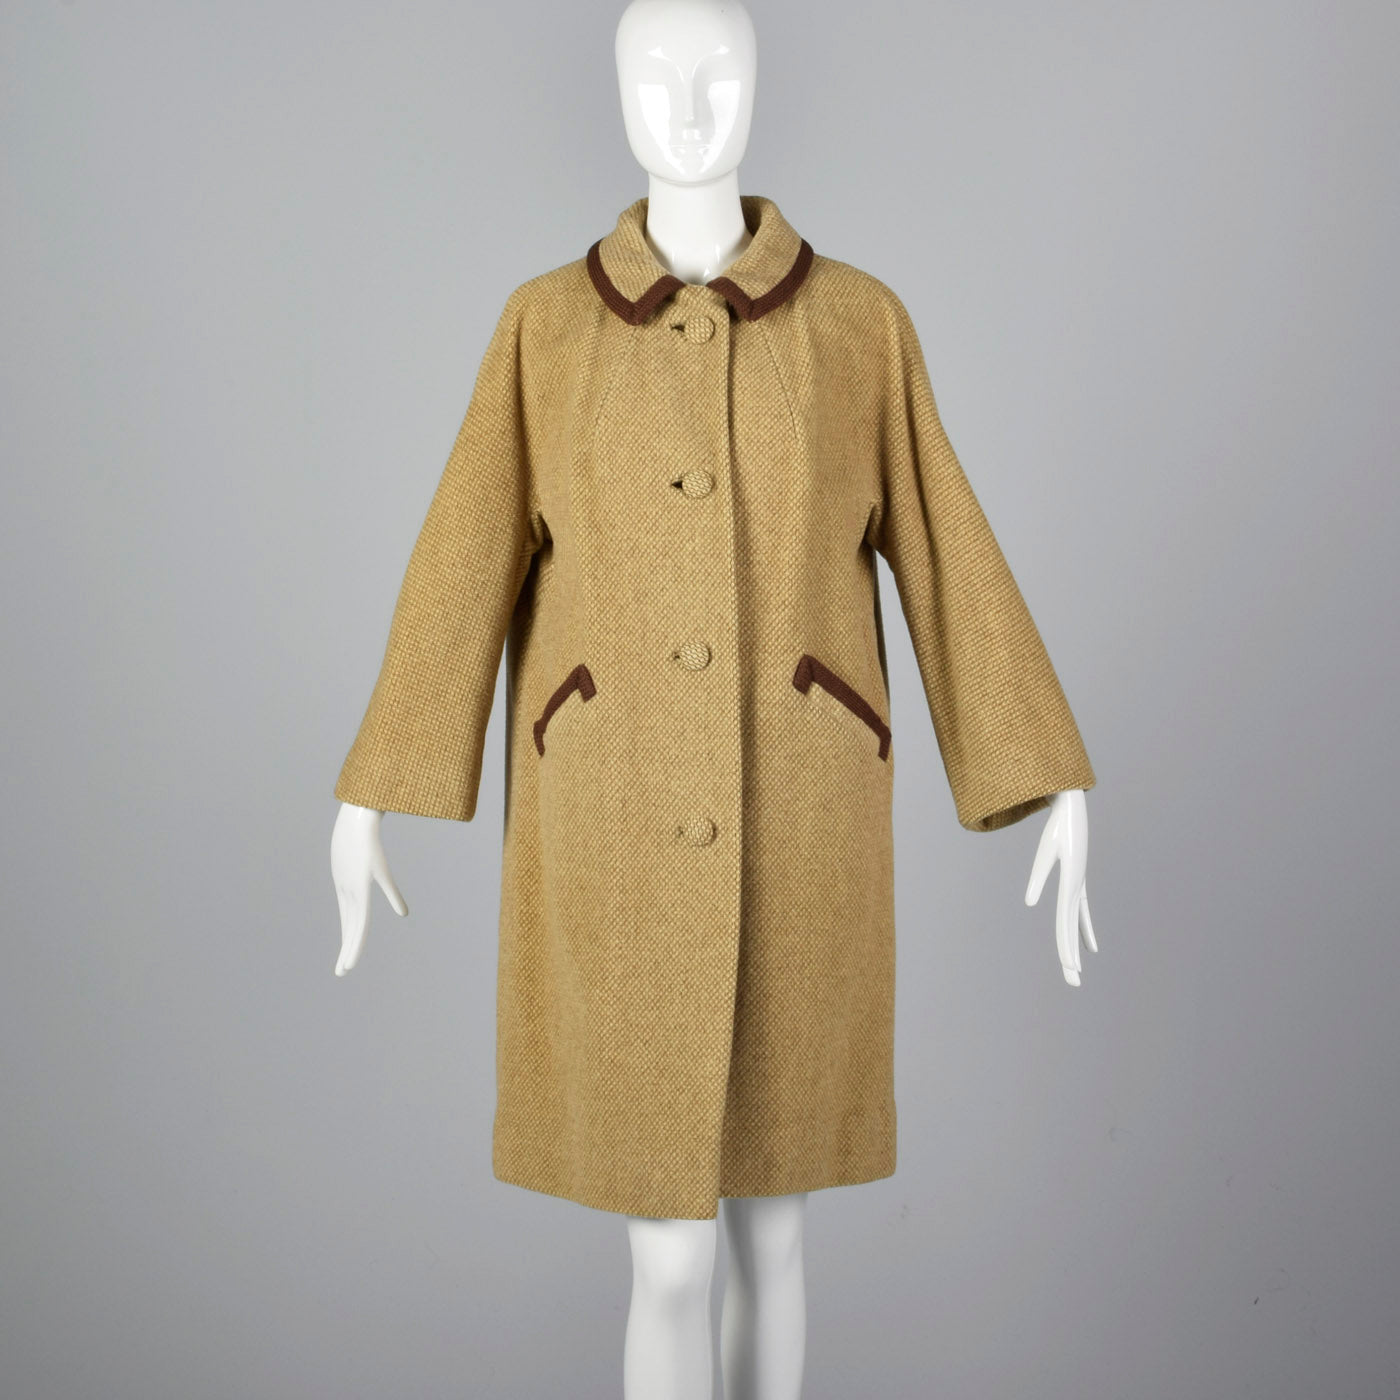 1950s Beige Tweed Coat with Brown Trim